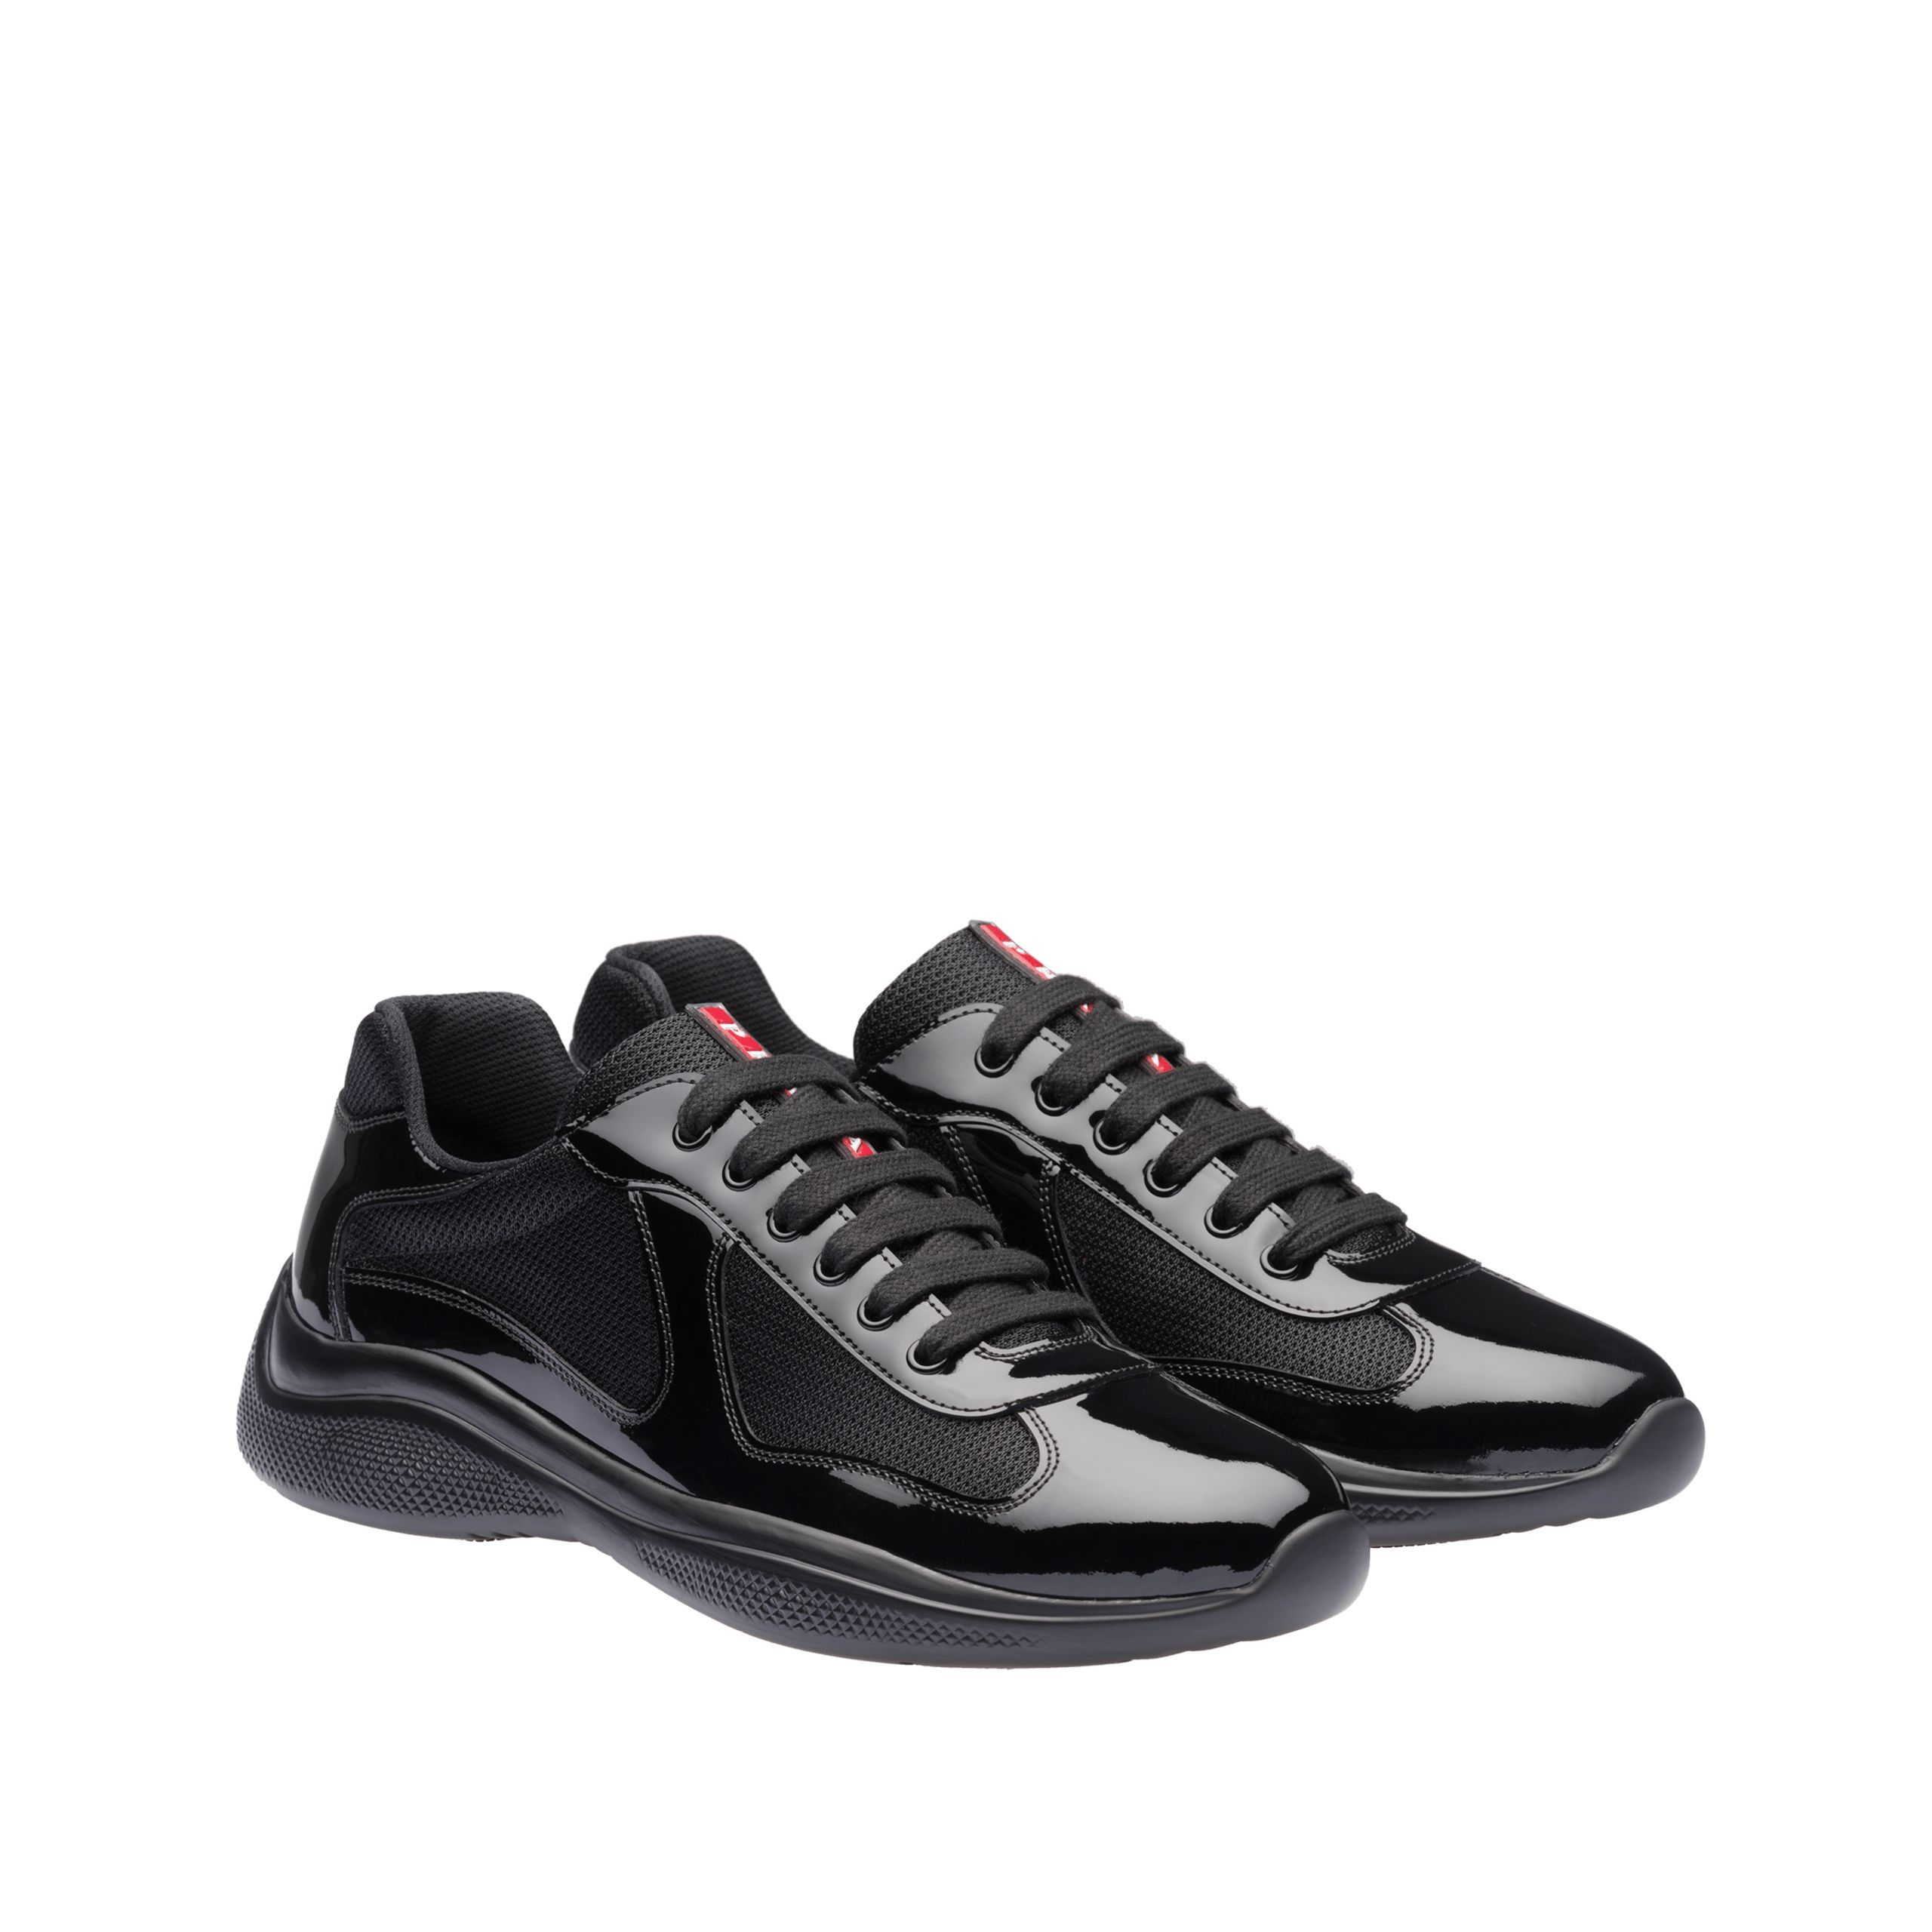 Patent leather and technical fabric